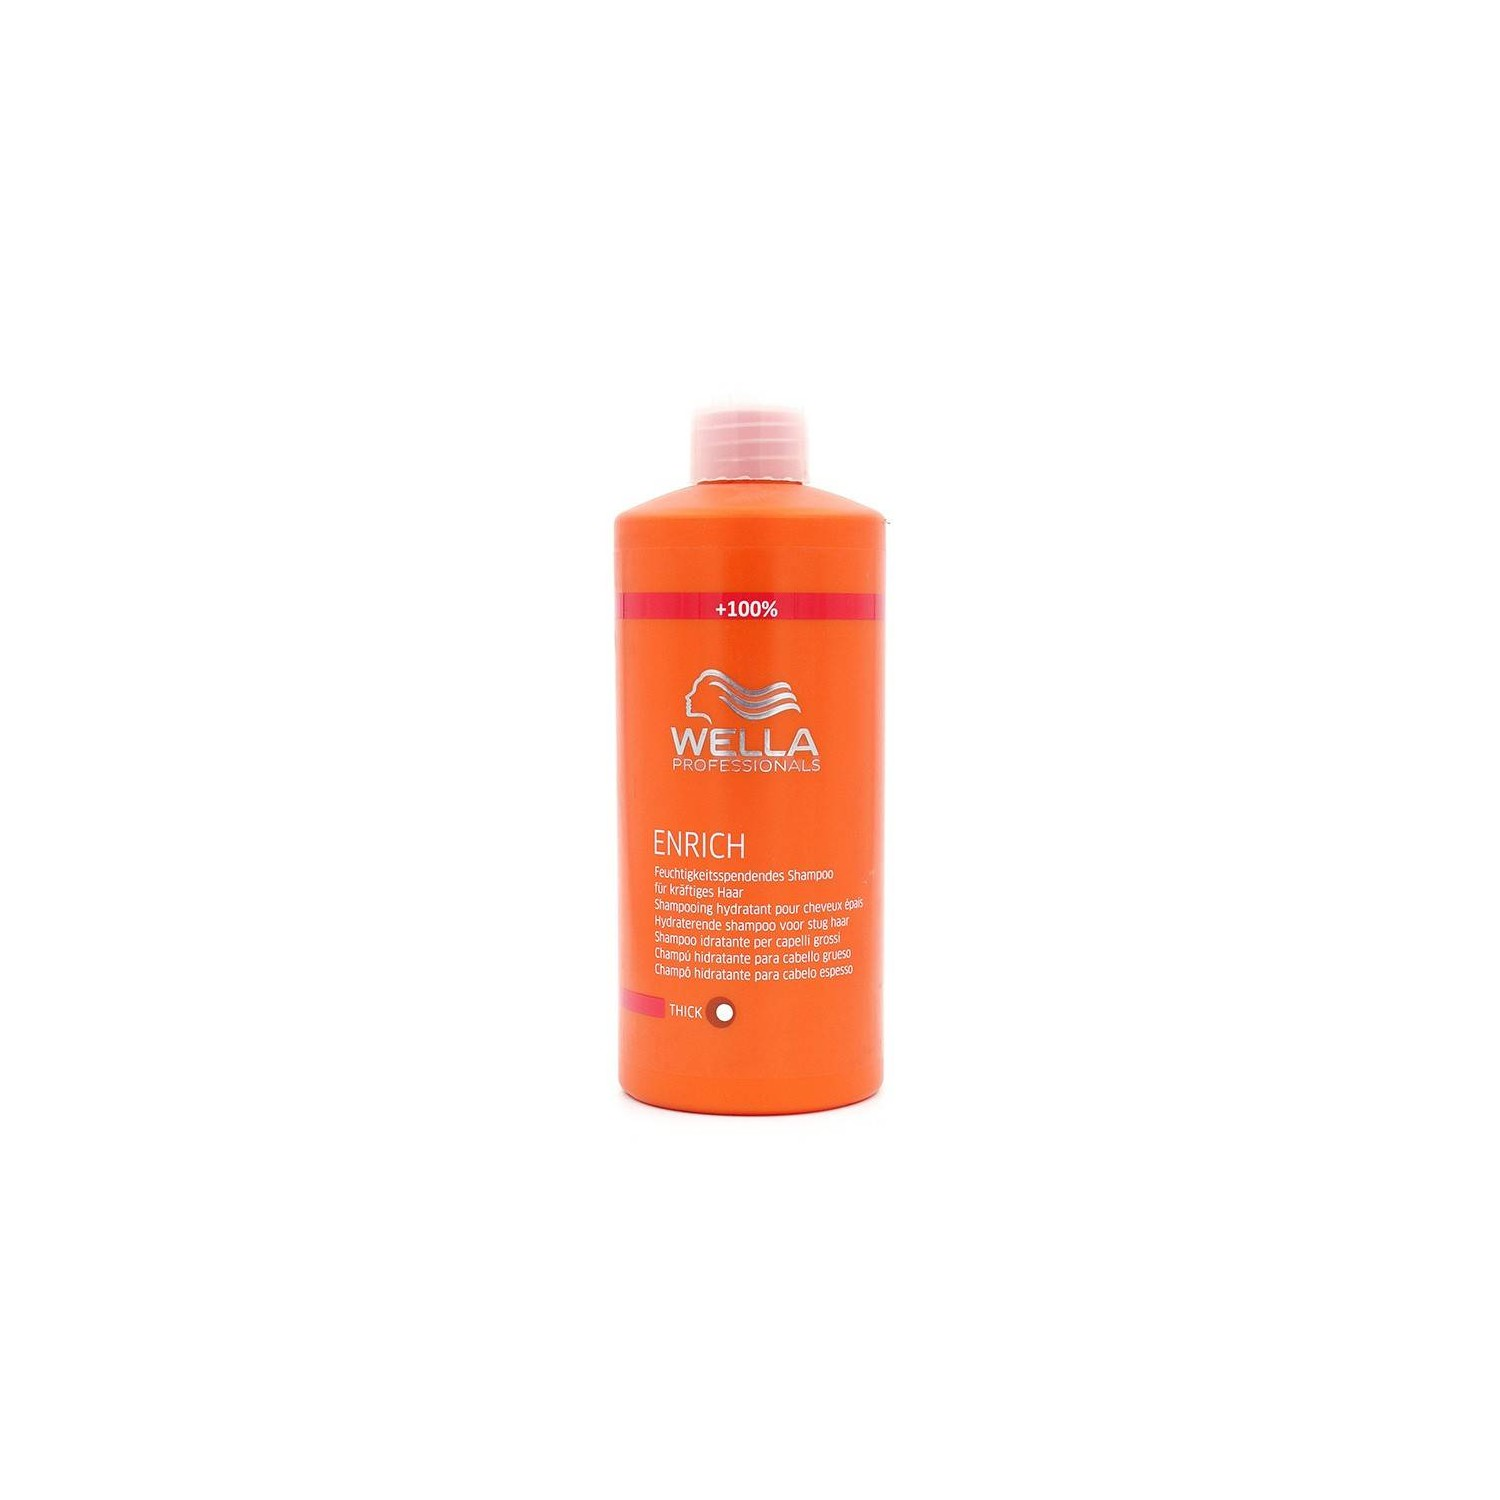 Wella Enrich Shampoo Shampoo Thick Hair 1000 Ml